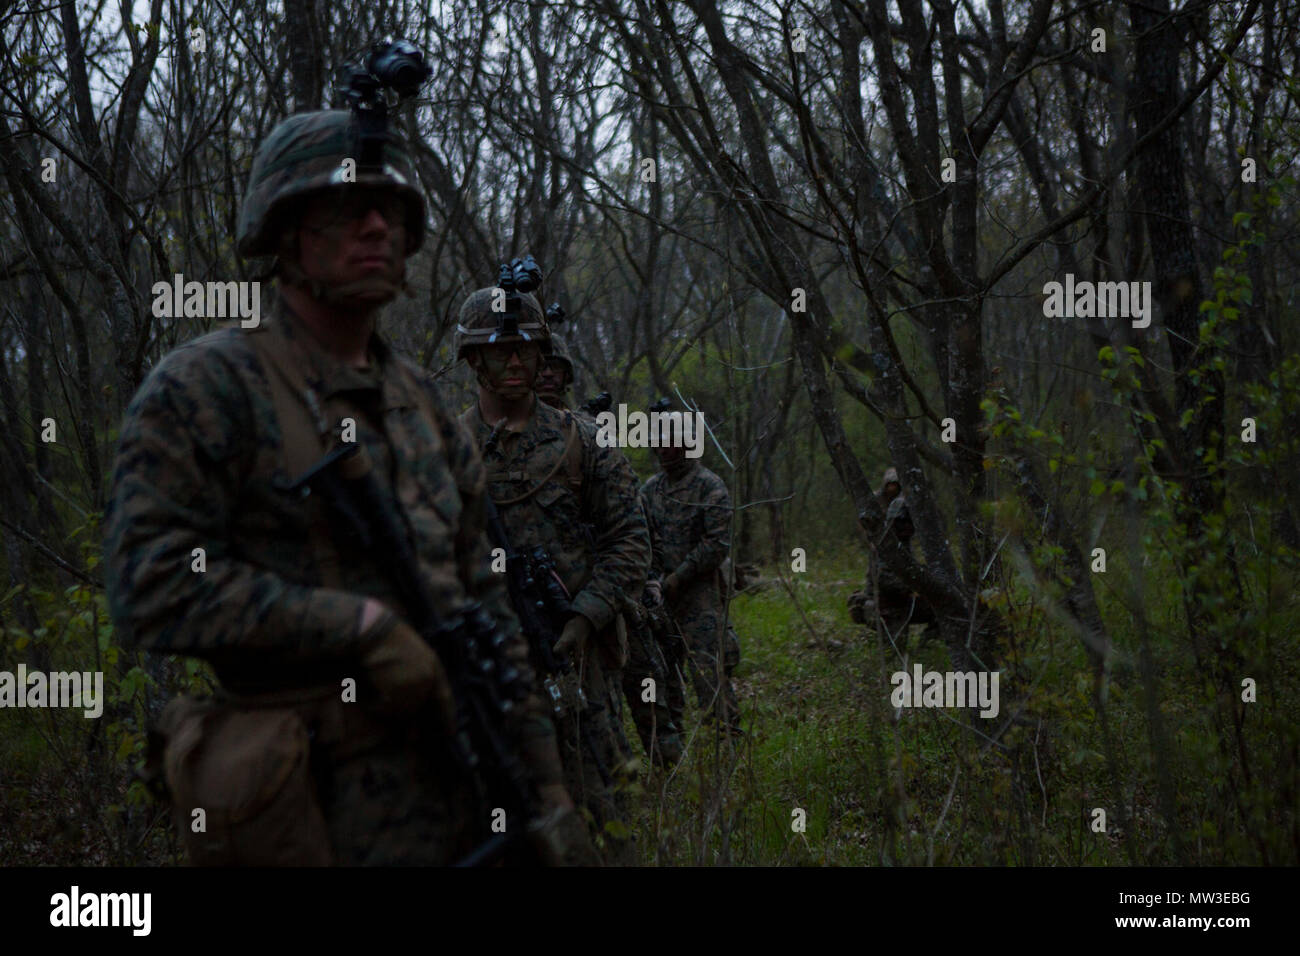 U.S. Marines with Black Sea Rotational Force (BSRF) 17.1 patrol during Exercise Platinum Eagle 17.2 at Babadag Training Area, Romania, April 27, 2017. Marines conducted patrol-based exercises to improve on skills with night vision optics through various terrains. With its flexibility and versatility, BSRF is ideally suited to carry out security cooperation efforts and a wide range of other missions in the European reigon. Stock Photo